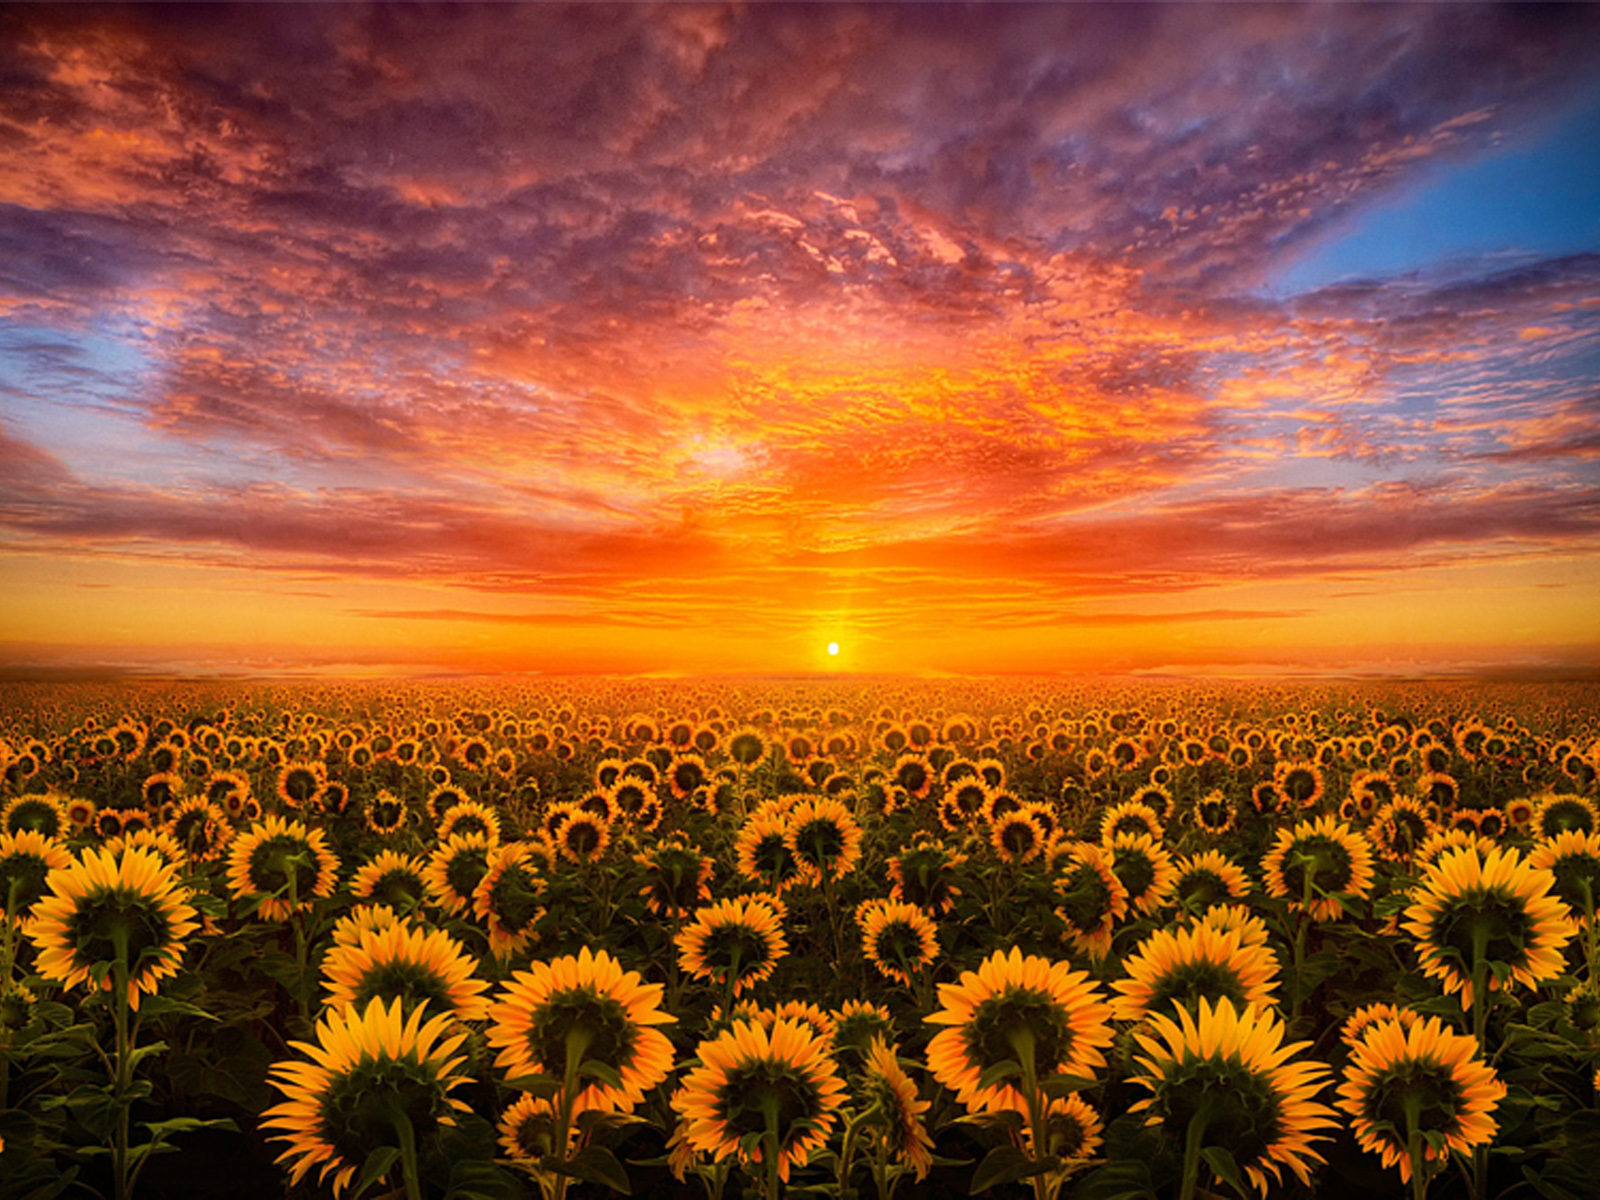 Fall Sunflower Desktop Wallpaper Sunset Red Sky Cloud Field With Sunflower Hd Desktop